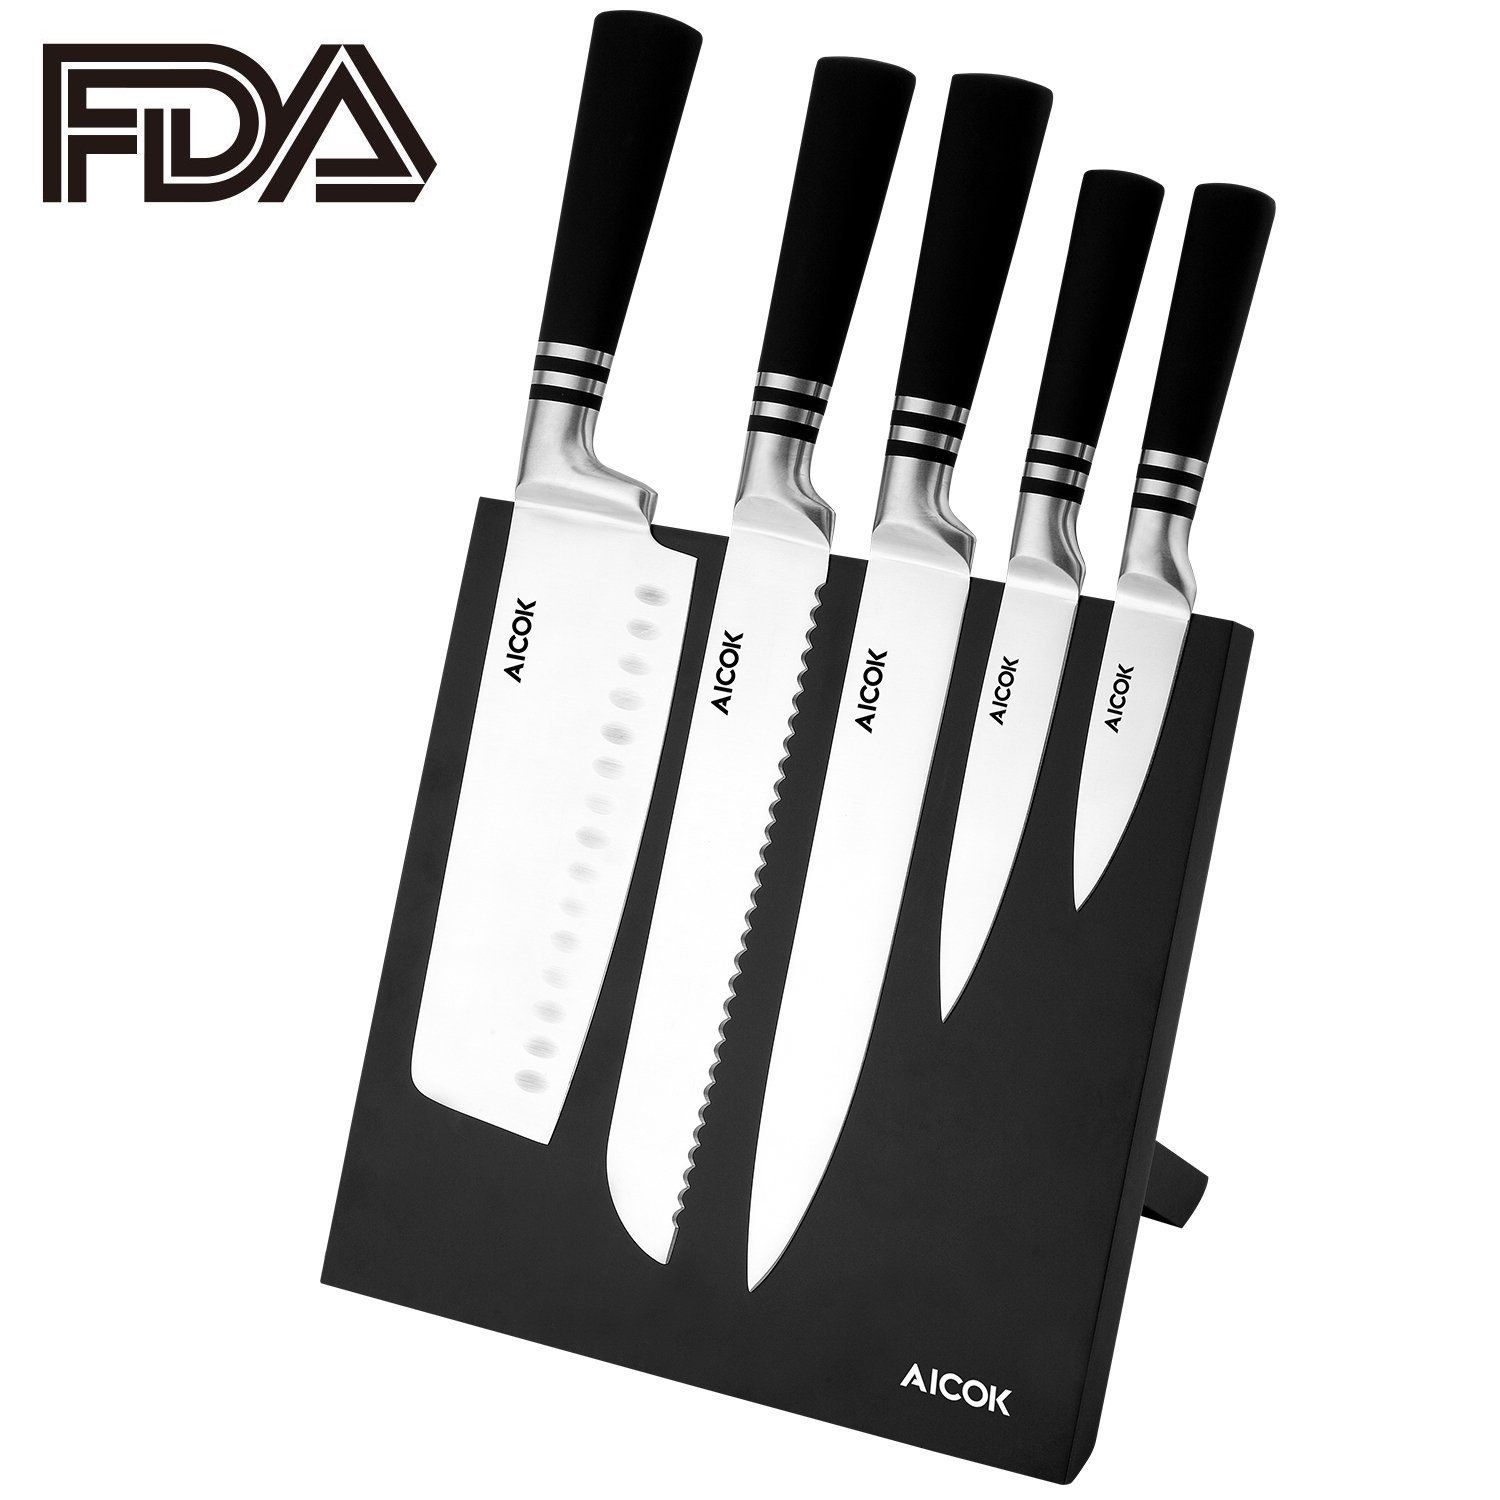 Cucina 6-pc Steak Knife Set Pin By Superrisparmio On Superrisparmio Knife Stand Magnetic